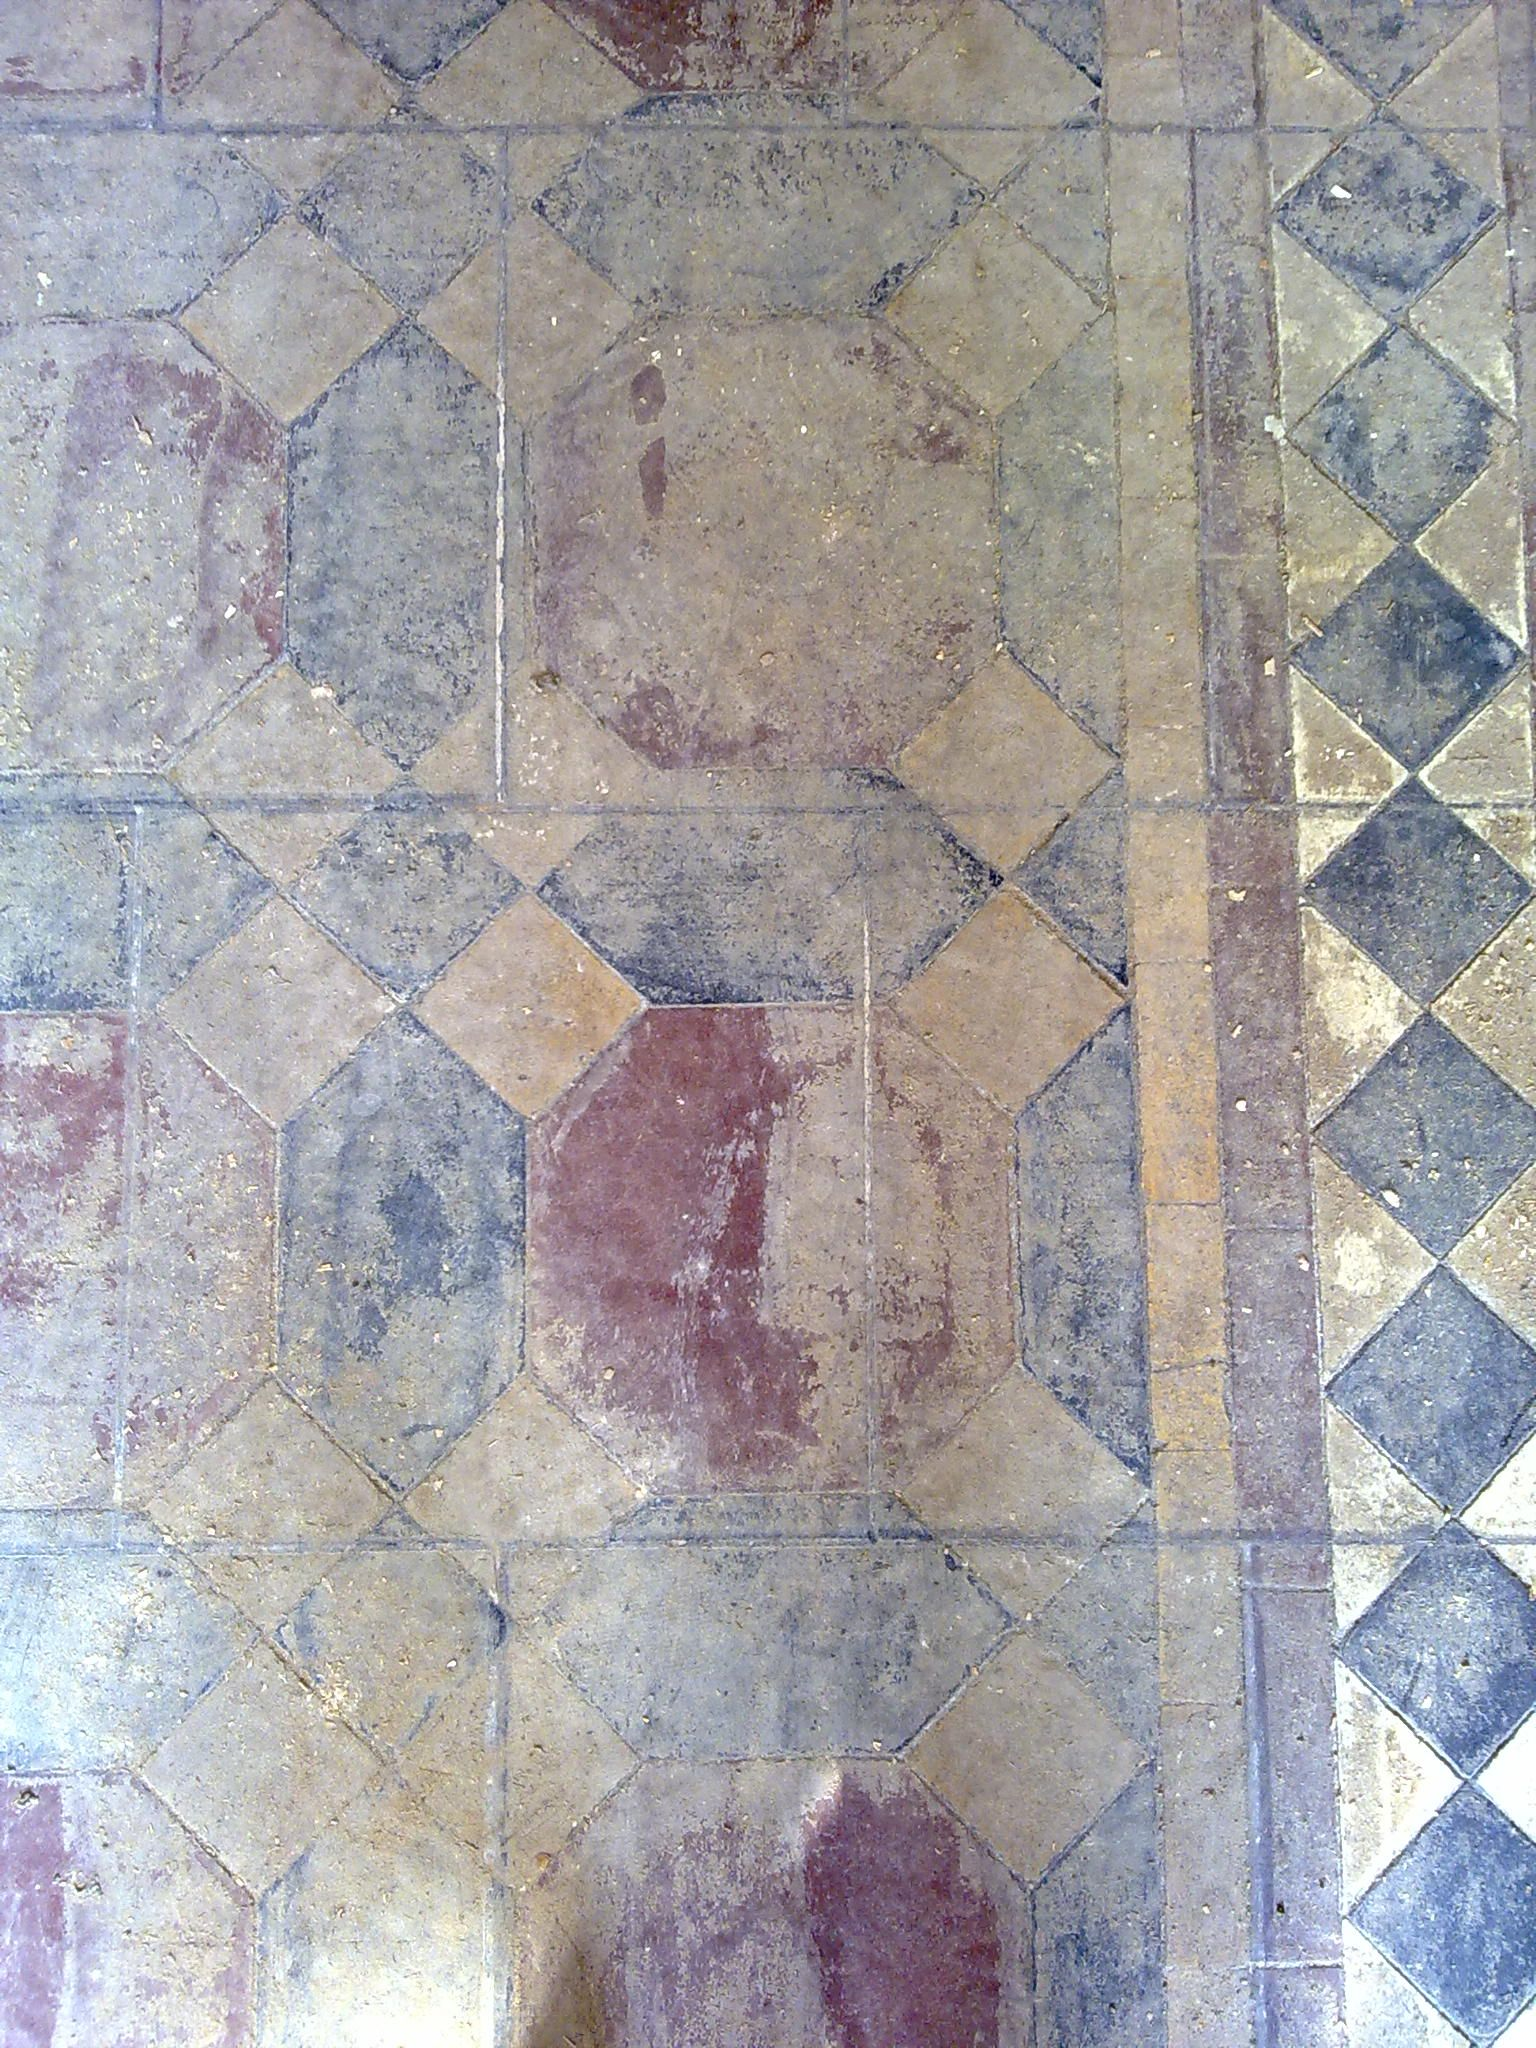 Victorian floor tiles tiles had been covered with glue victorian tiles cleaned and restored by floor restoration specialists victorian tile floor cleaners based near st albans and service herts beds doublecrazyfo Gallery